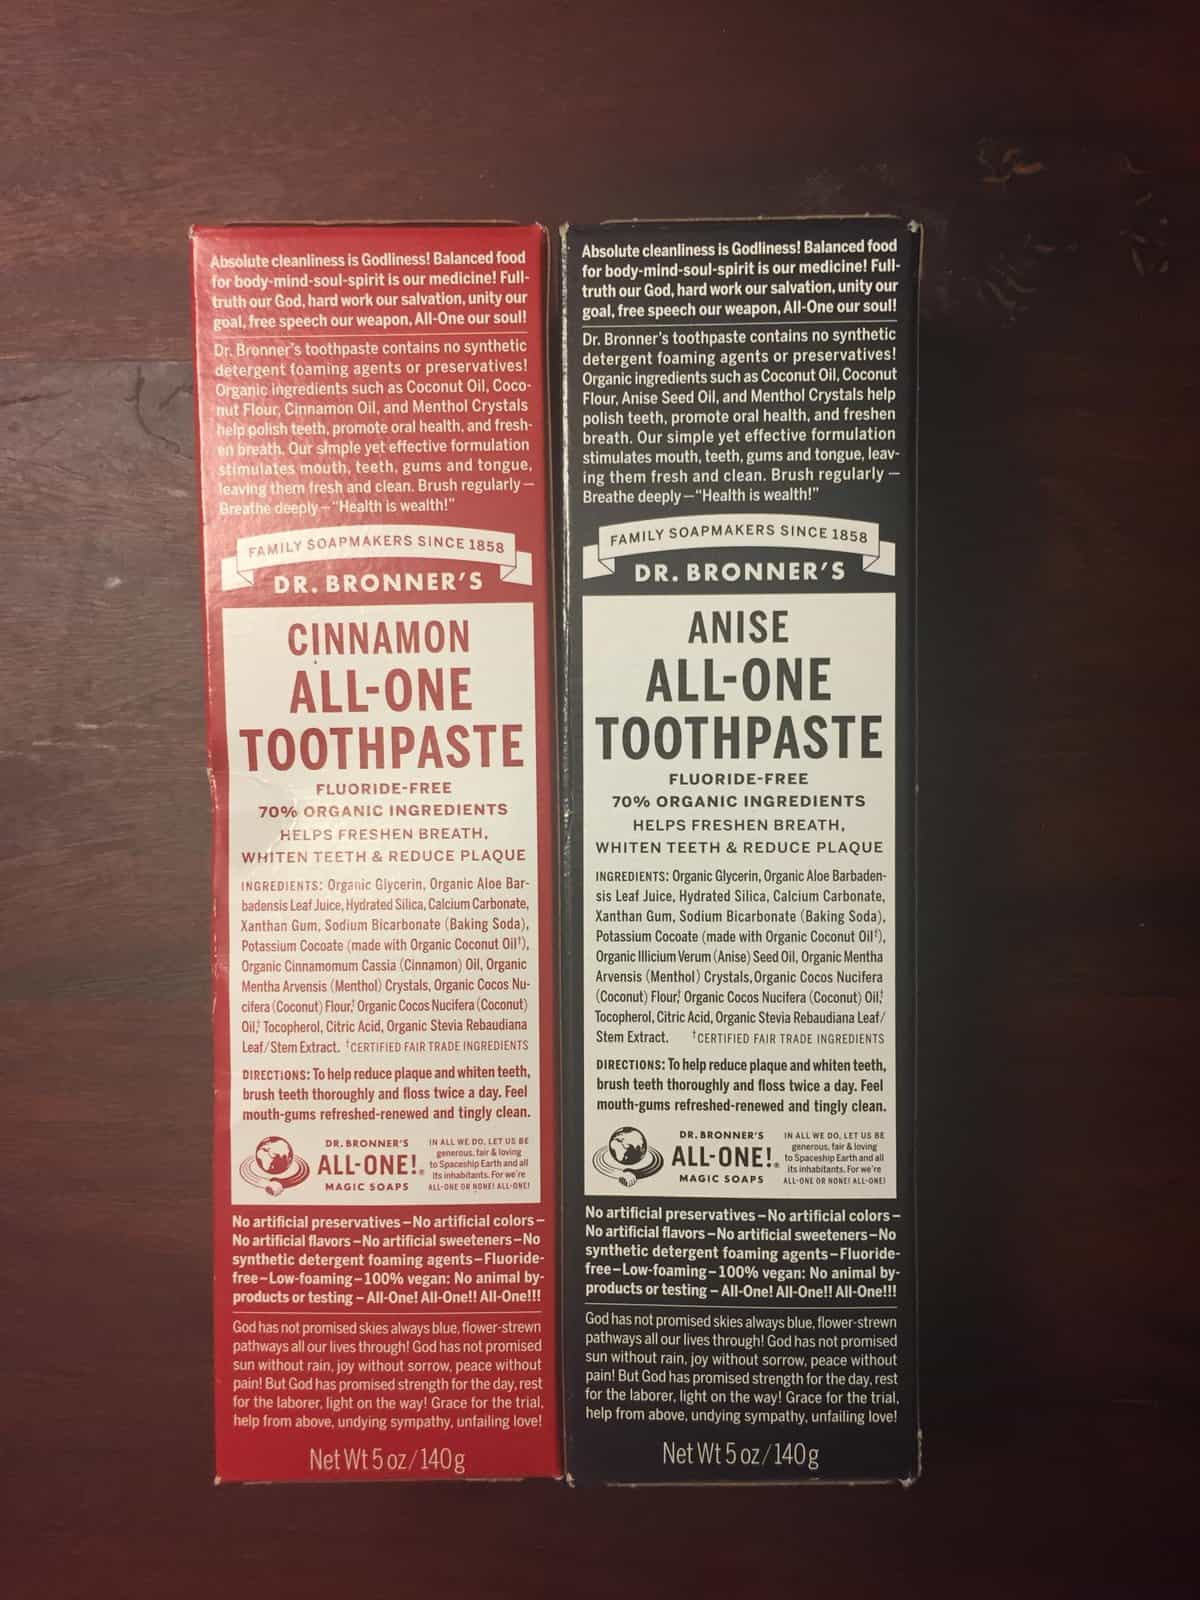 Dr. Bronner's All-One Toothpaste - Cinnamon and Anise flavors